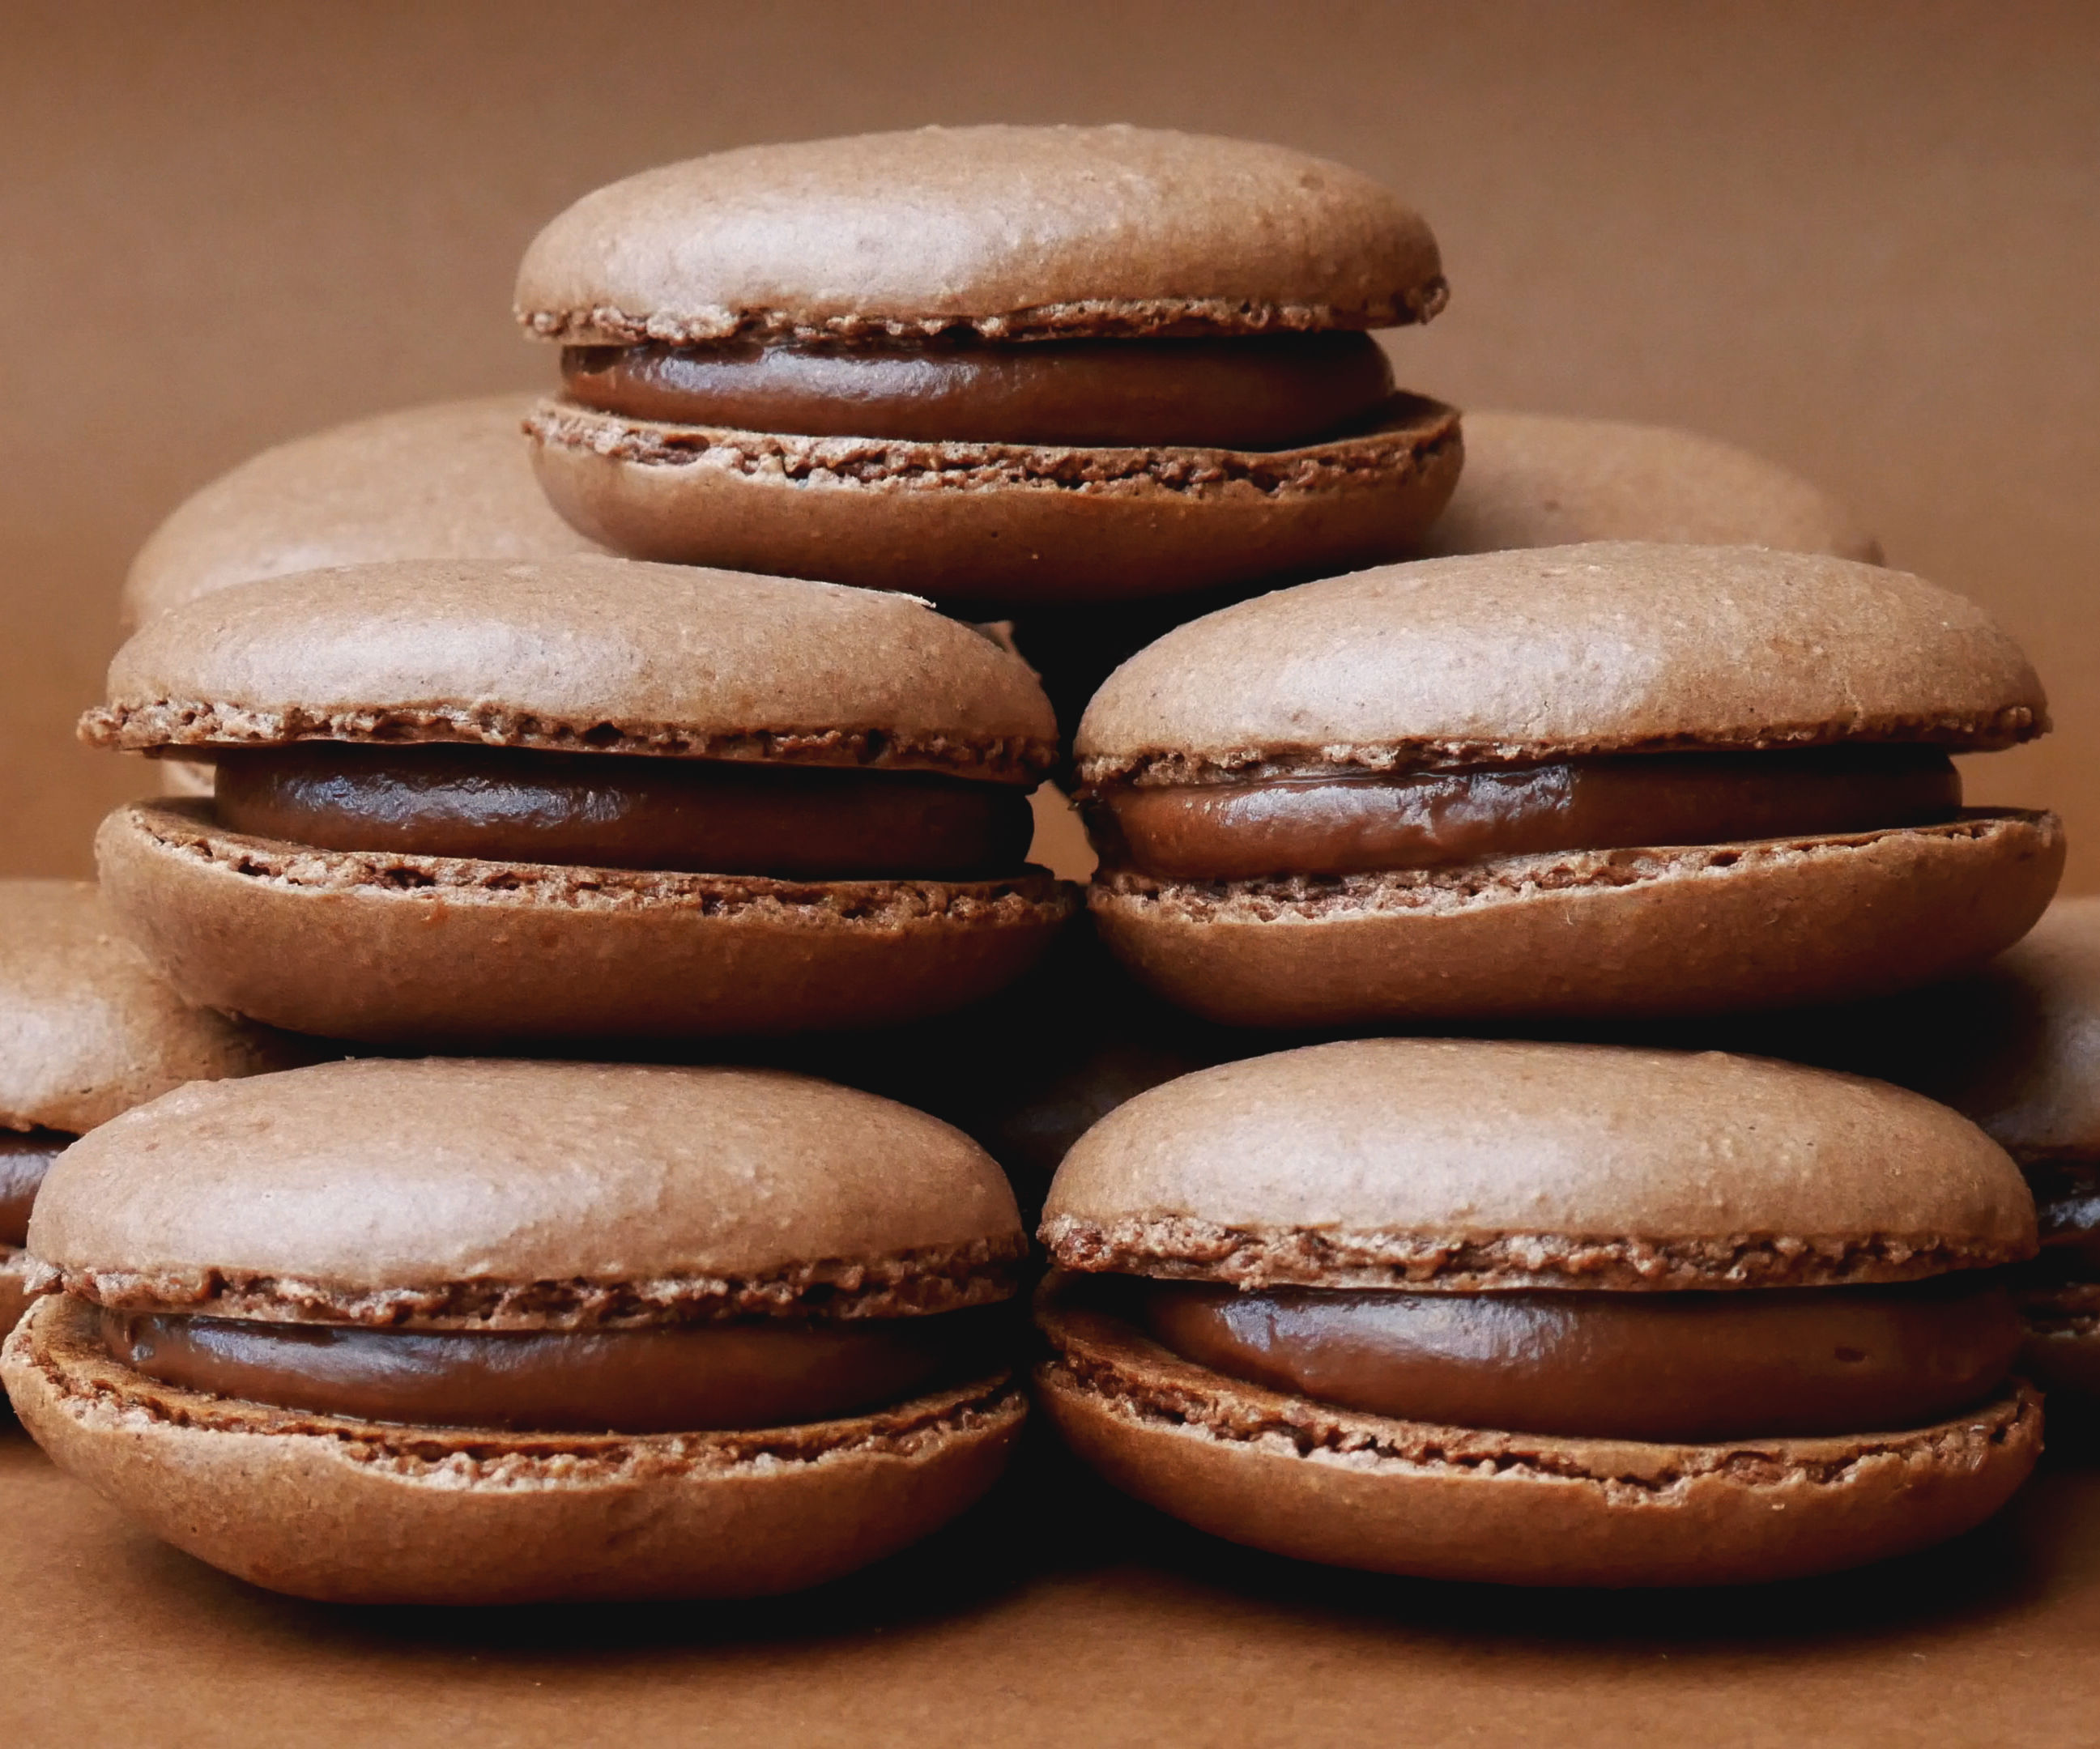 Nutella Macarons (Chocolate Hazelnut French Macarons)